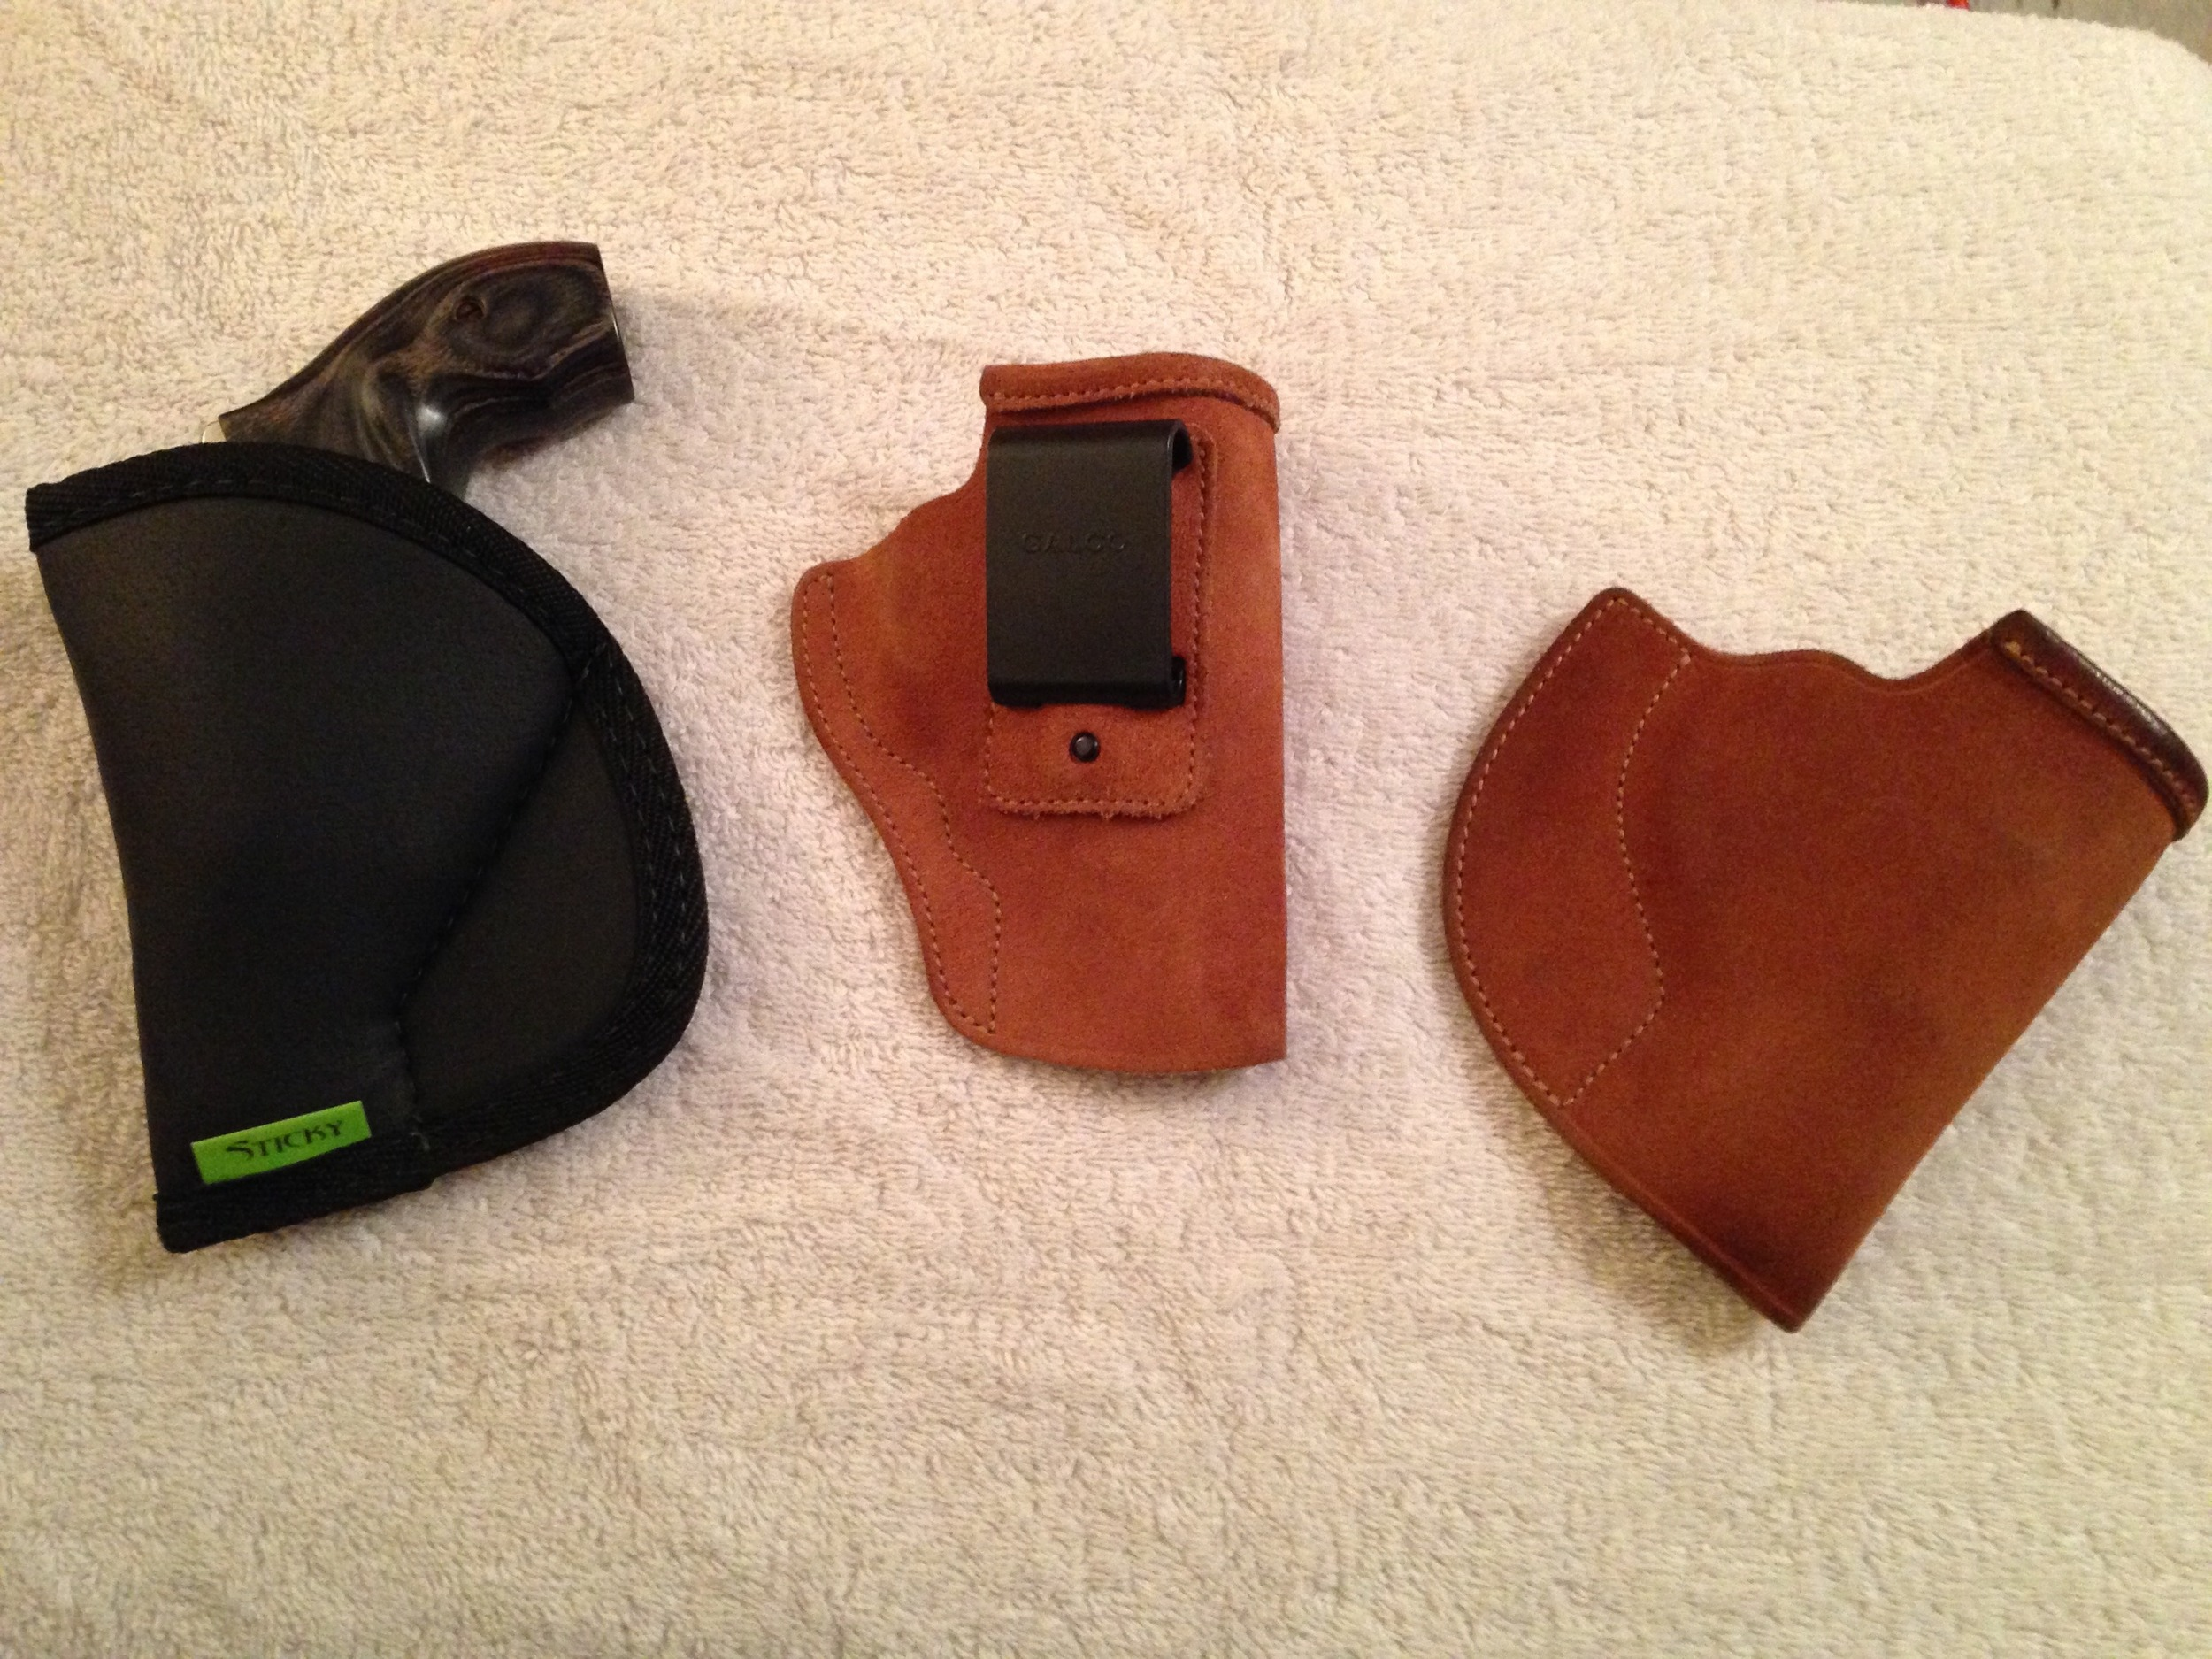 The Sticky Holster can potentially serve as a pocket & IWB holster